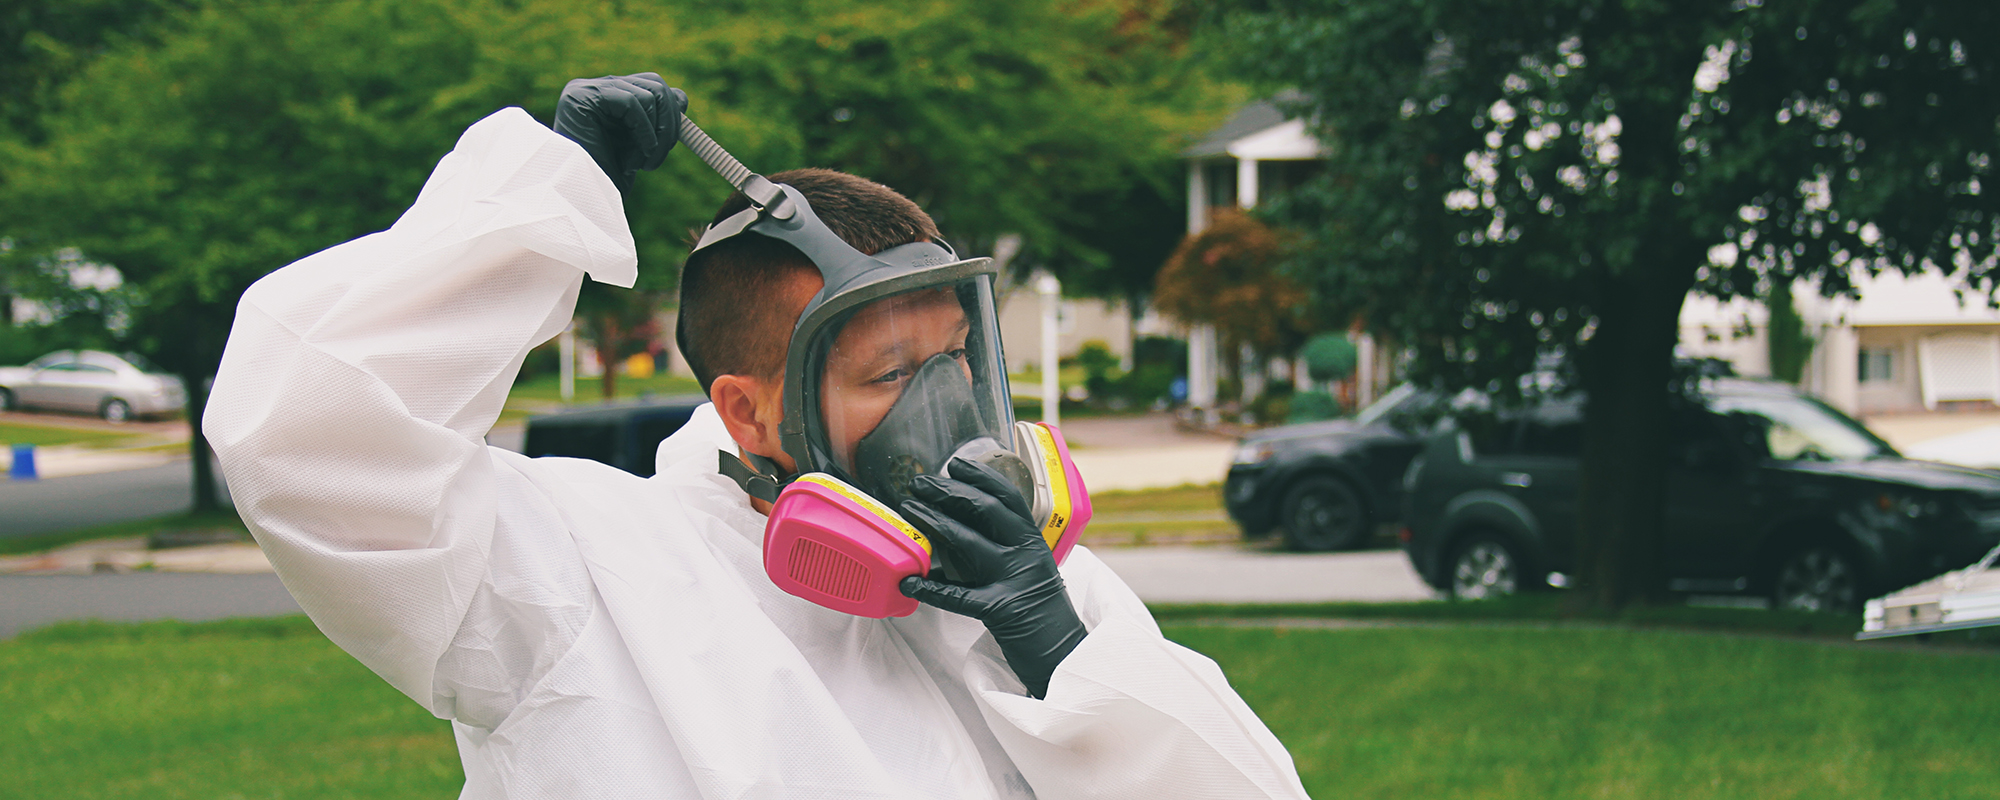 trained technician for mold removal moorestown nj